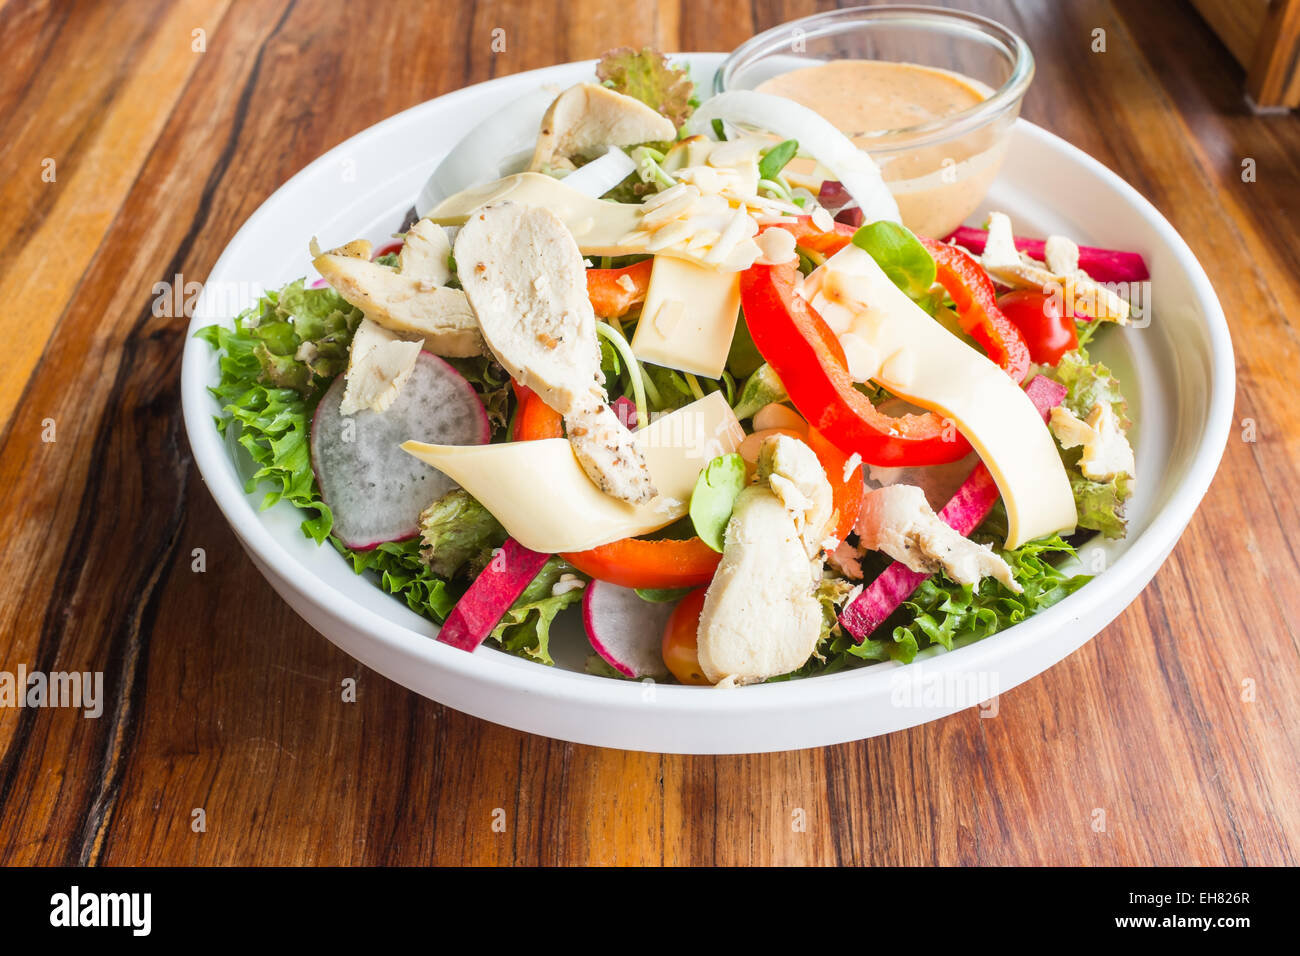 Chicken Caesar Salad In Restaurant Stock Photos Chicken Caesar